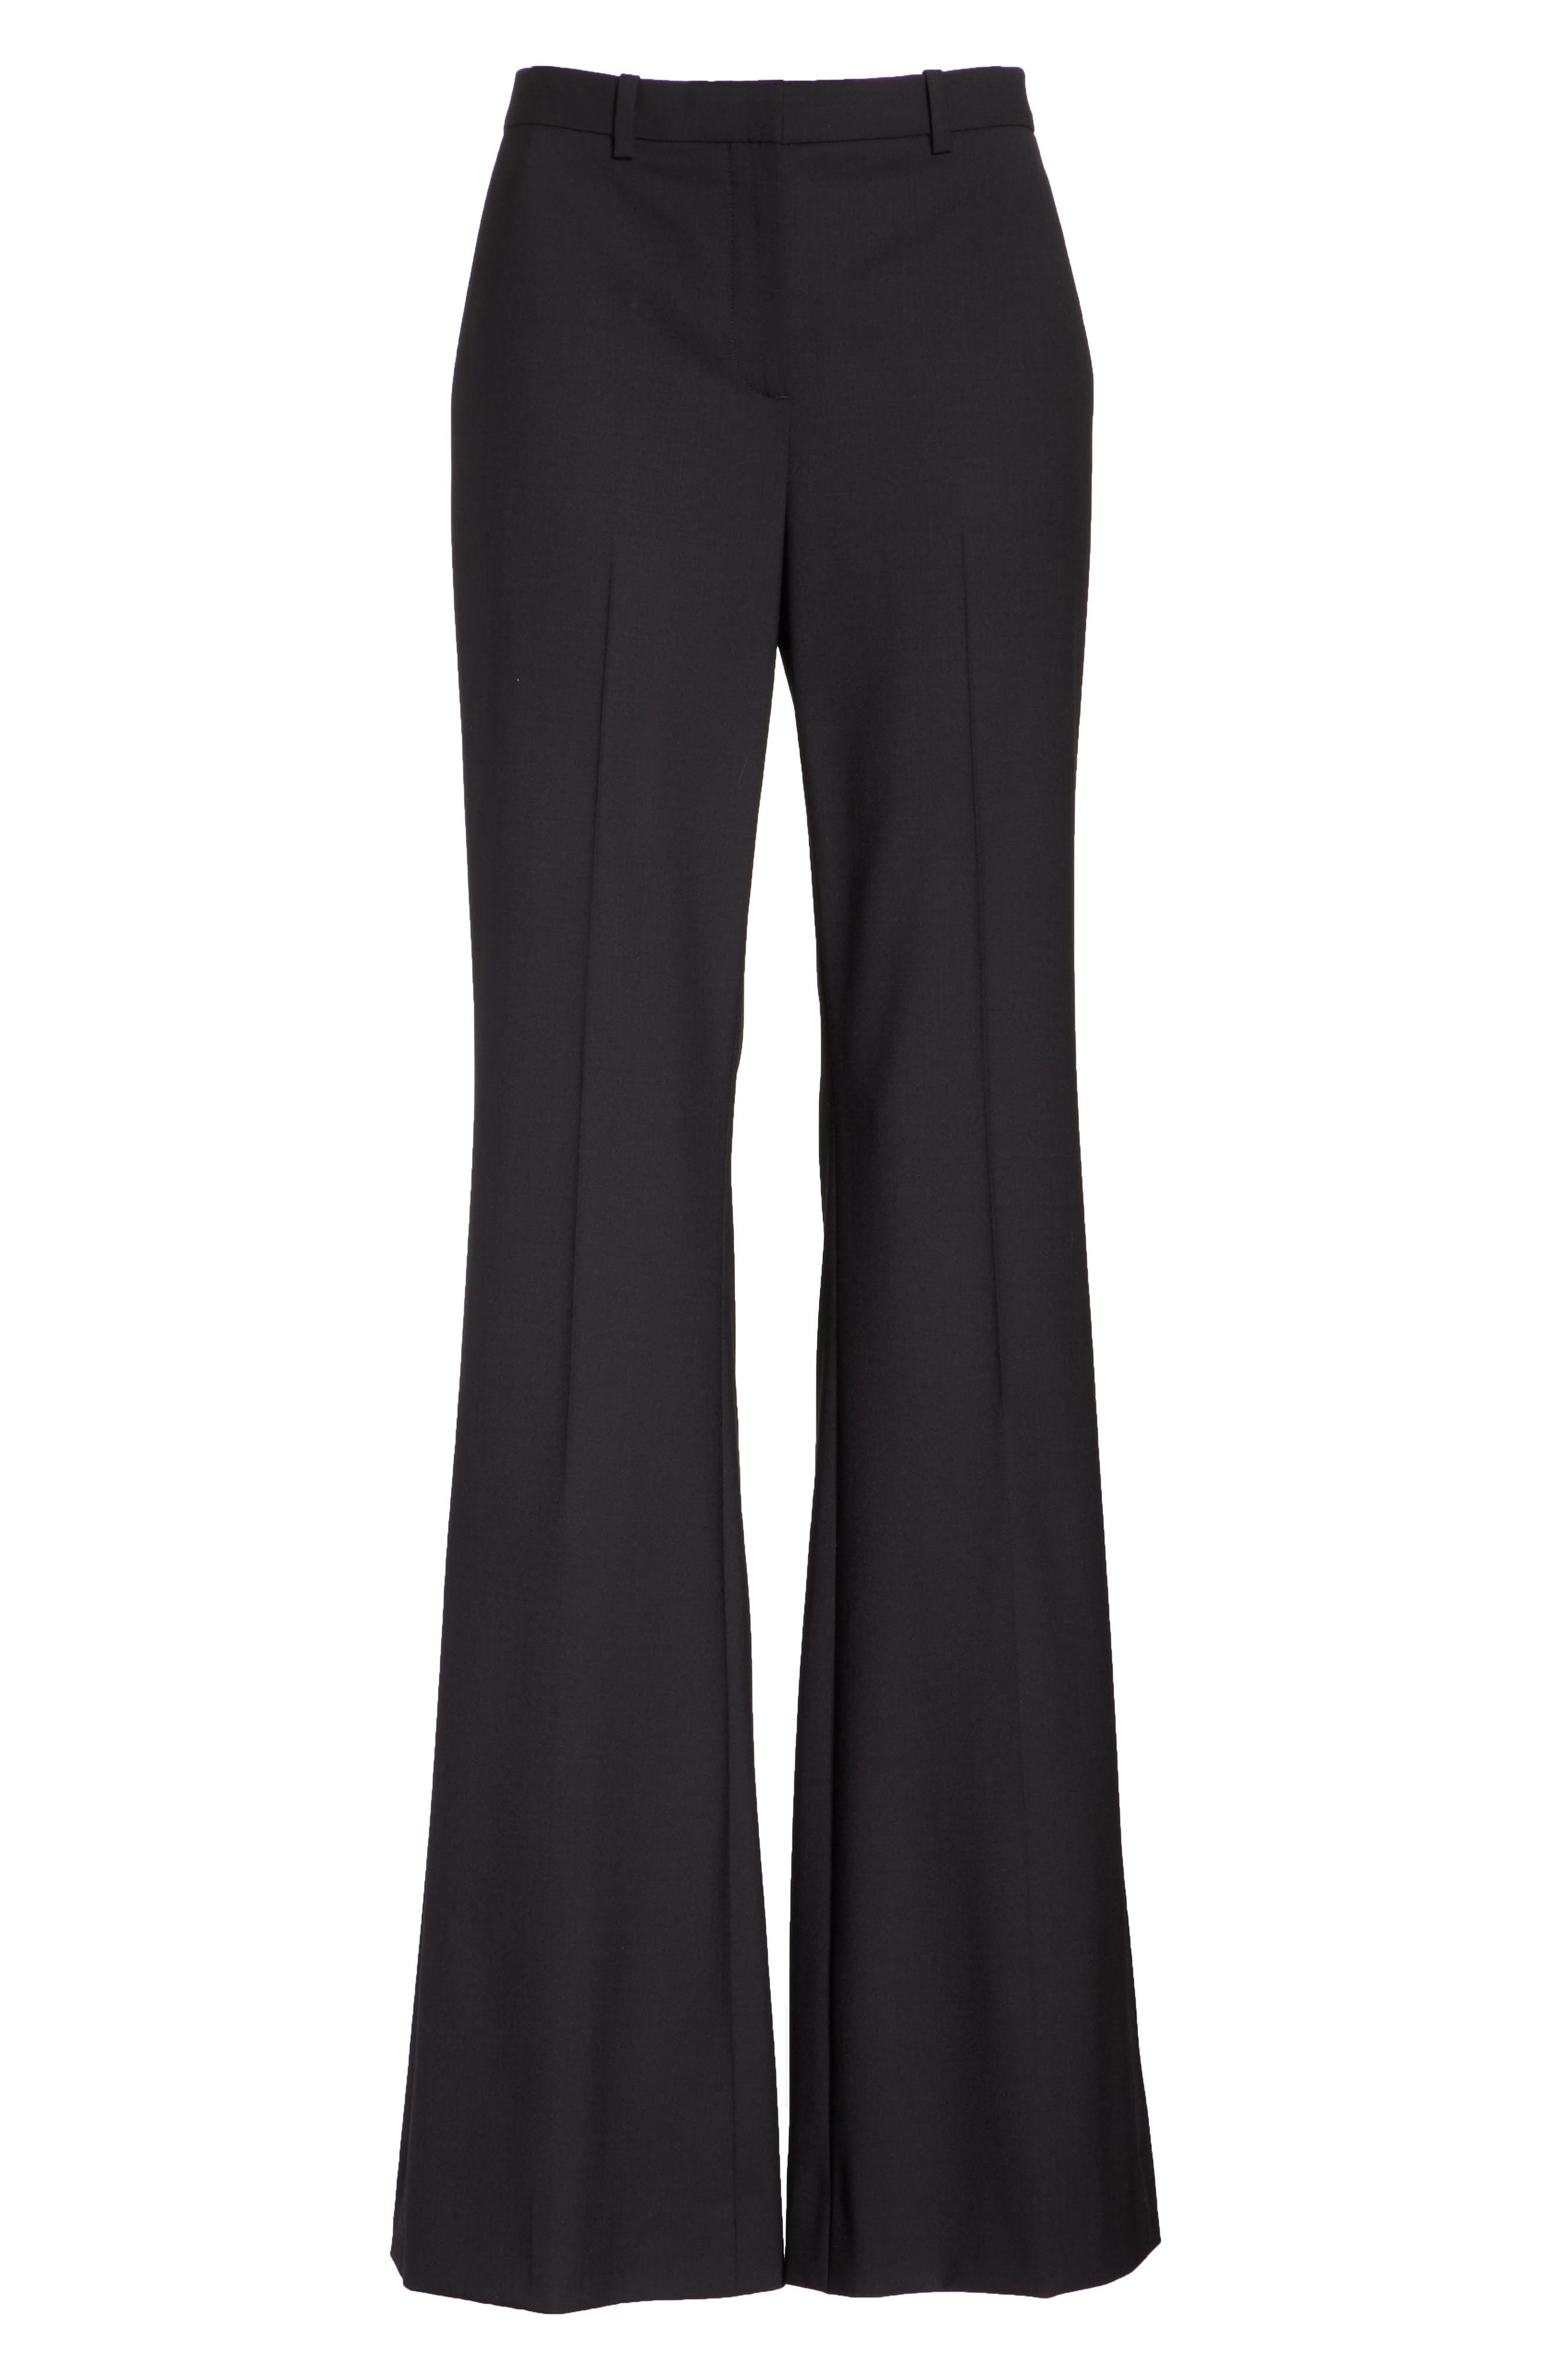 THEORY, Demitria 2 Stretch Wool Suit Pants, Alternate thumbnail 7, color, BLACK